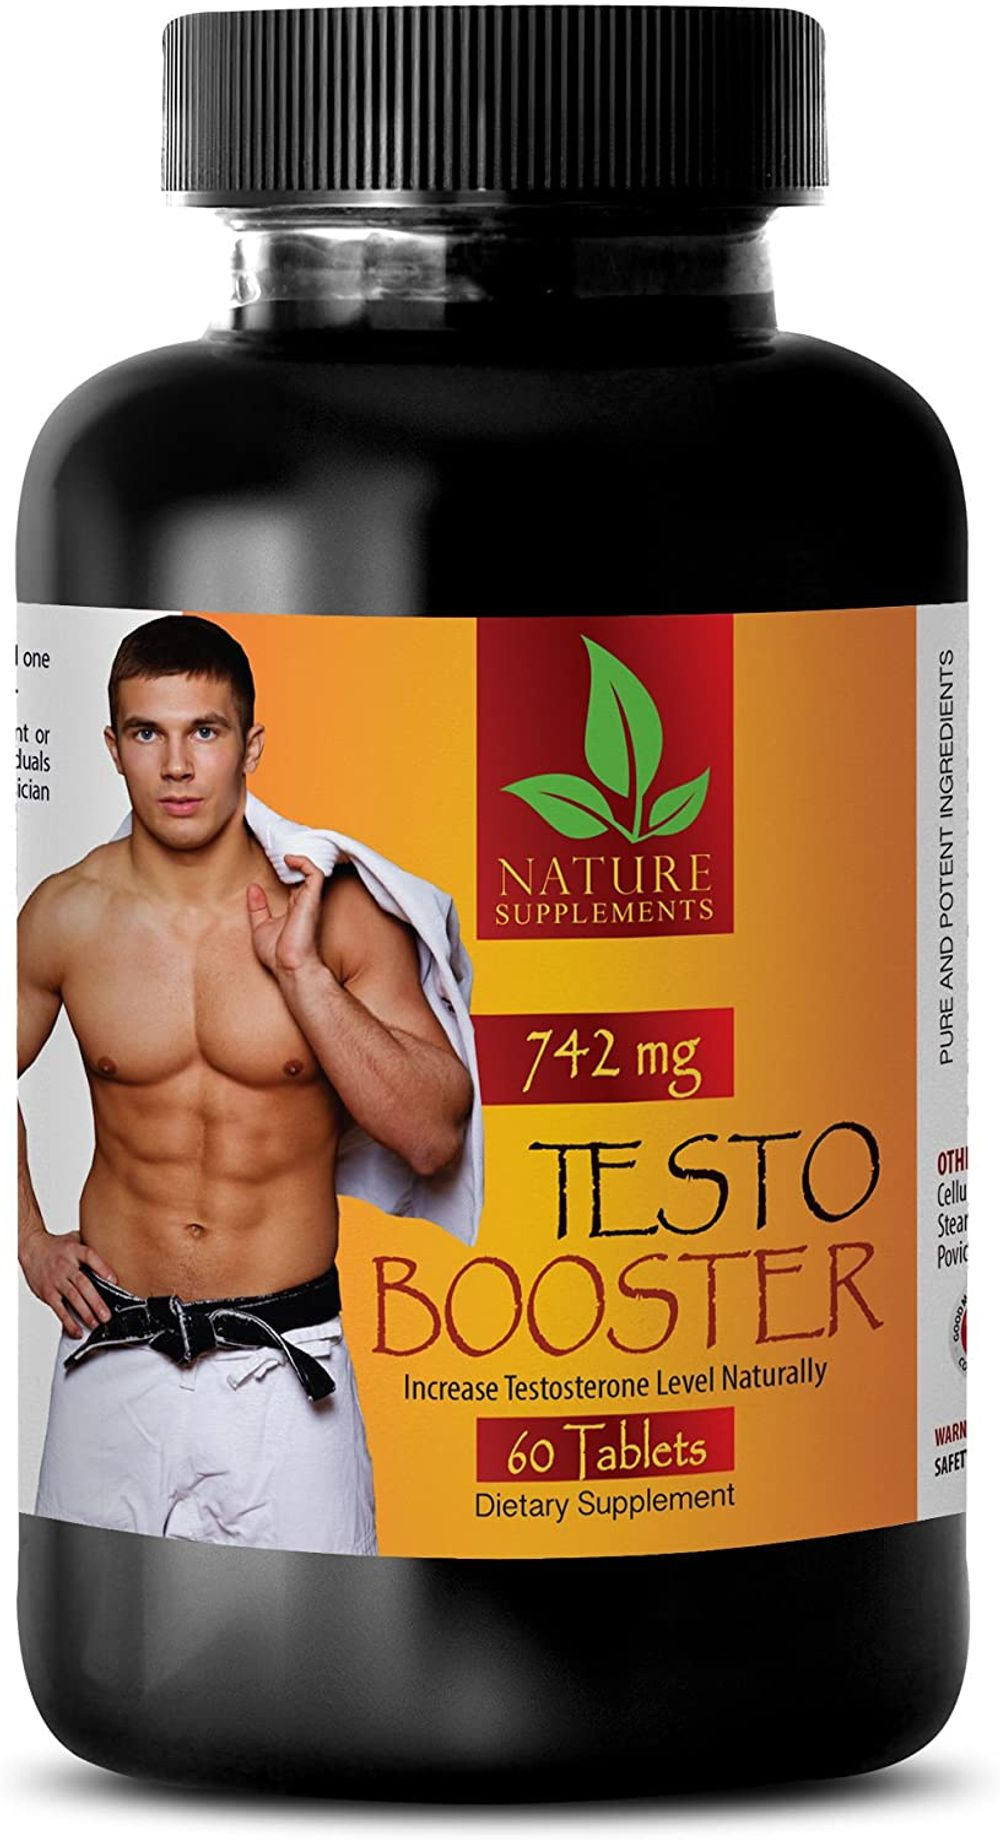 Increase Muscle Mass - Testosterone Booster 742Mg - Testosterone Booster for Men - 1 Bottle 60